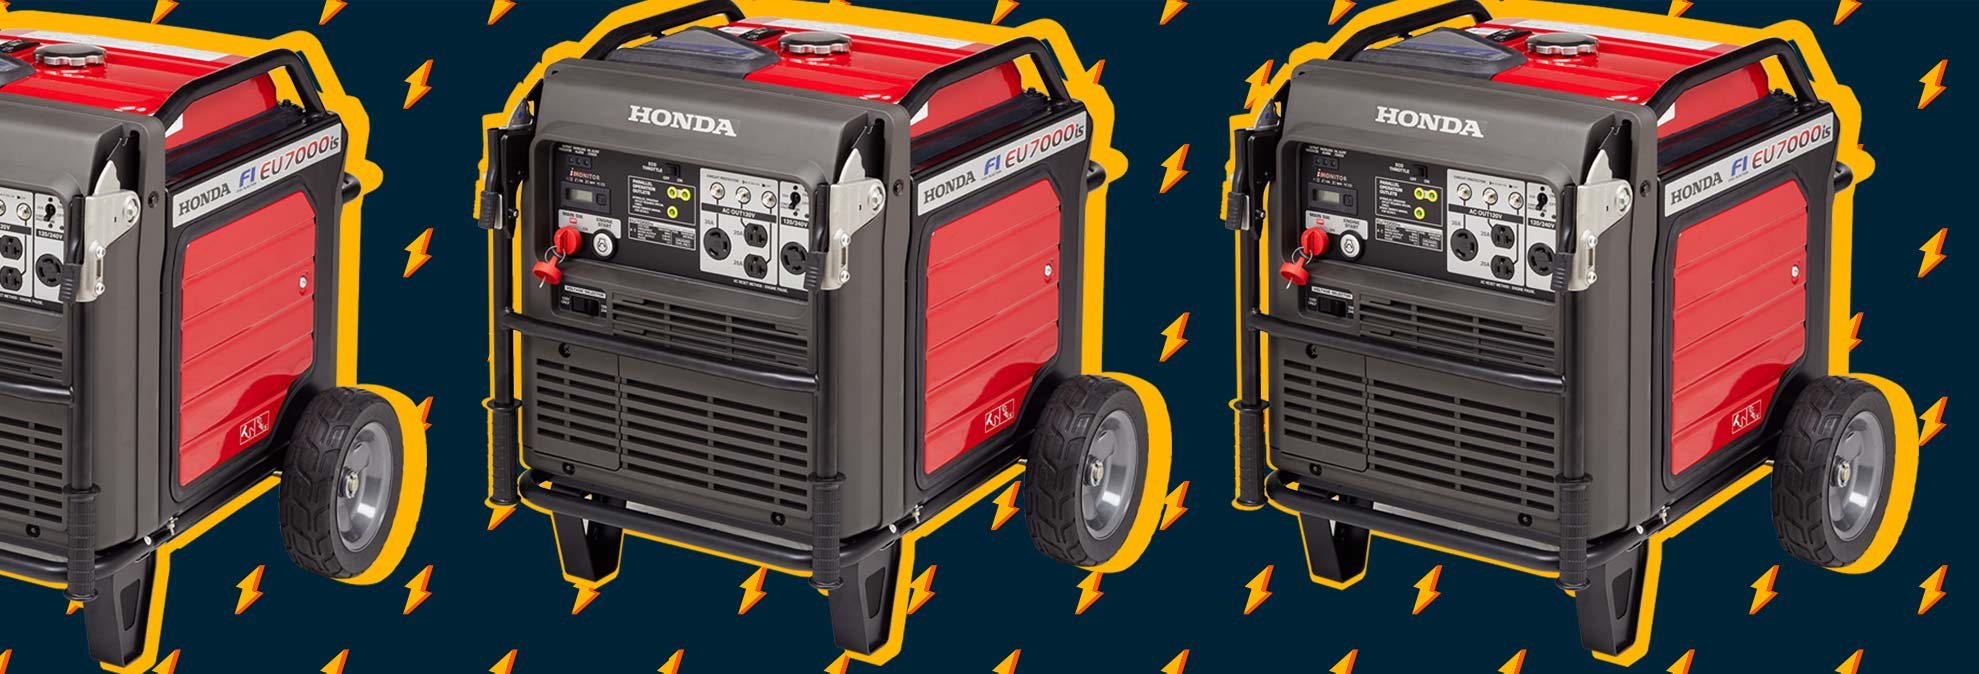 The Pros And Cons Of Inverter Generators Consumer Reports To Upgrade Your Homes Electrical Panel System Level